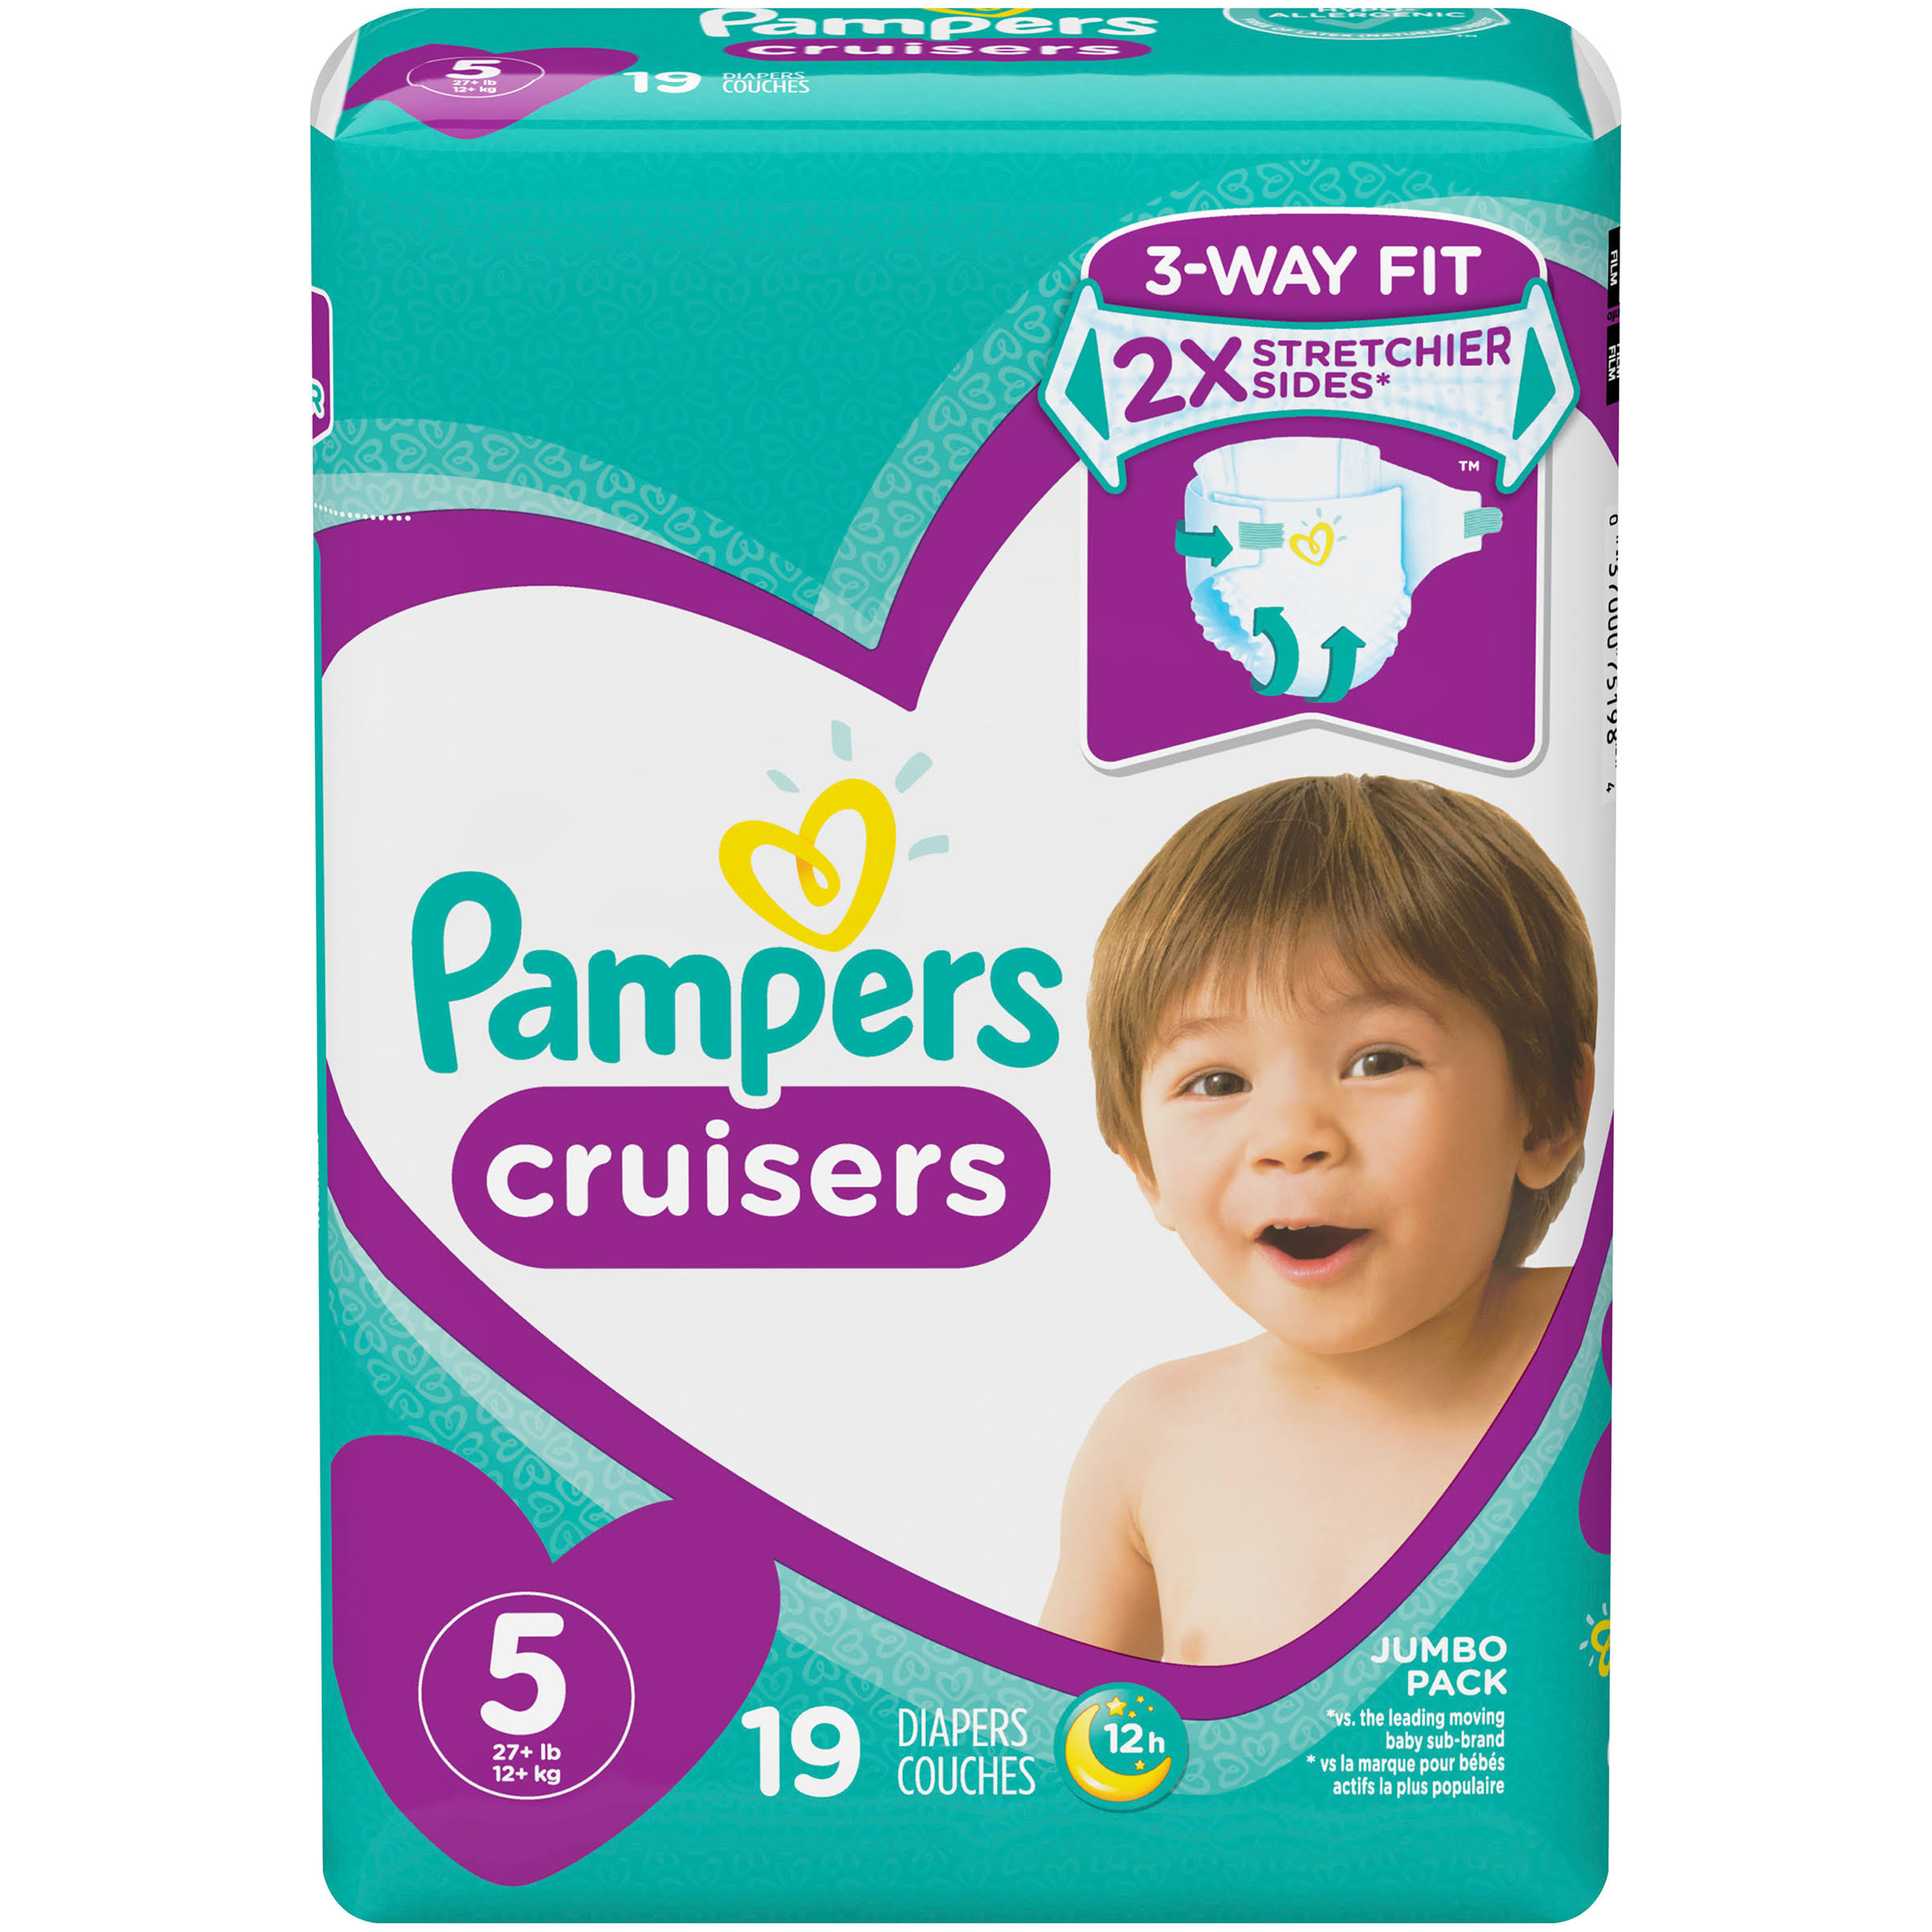 Pampers Cruisers Disposable Baby Diapers - Jumbo Pack, 19ct